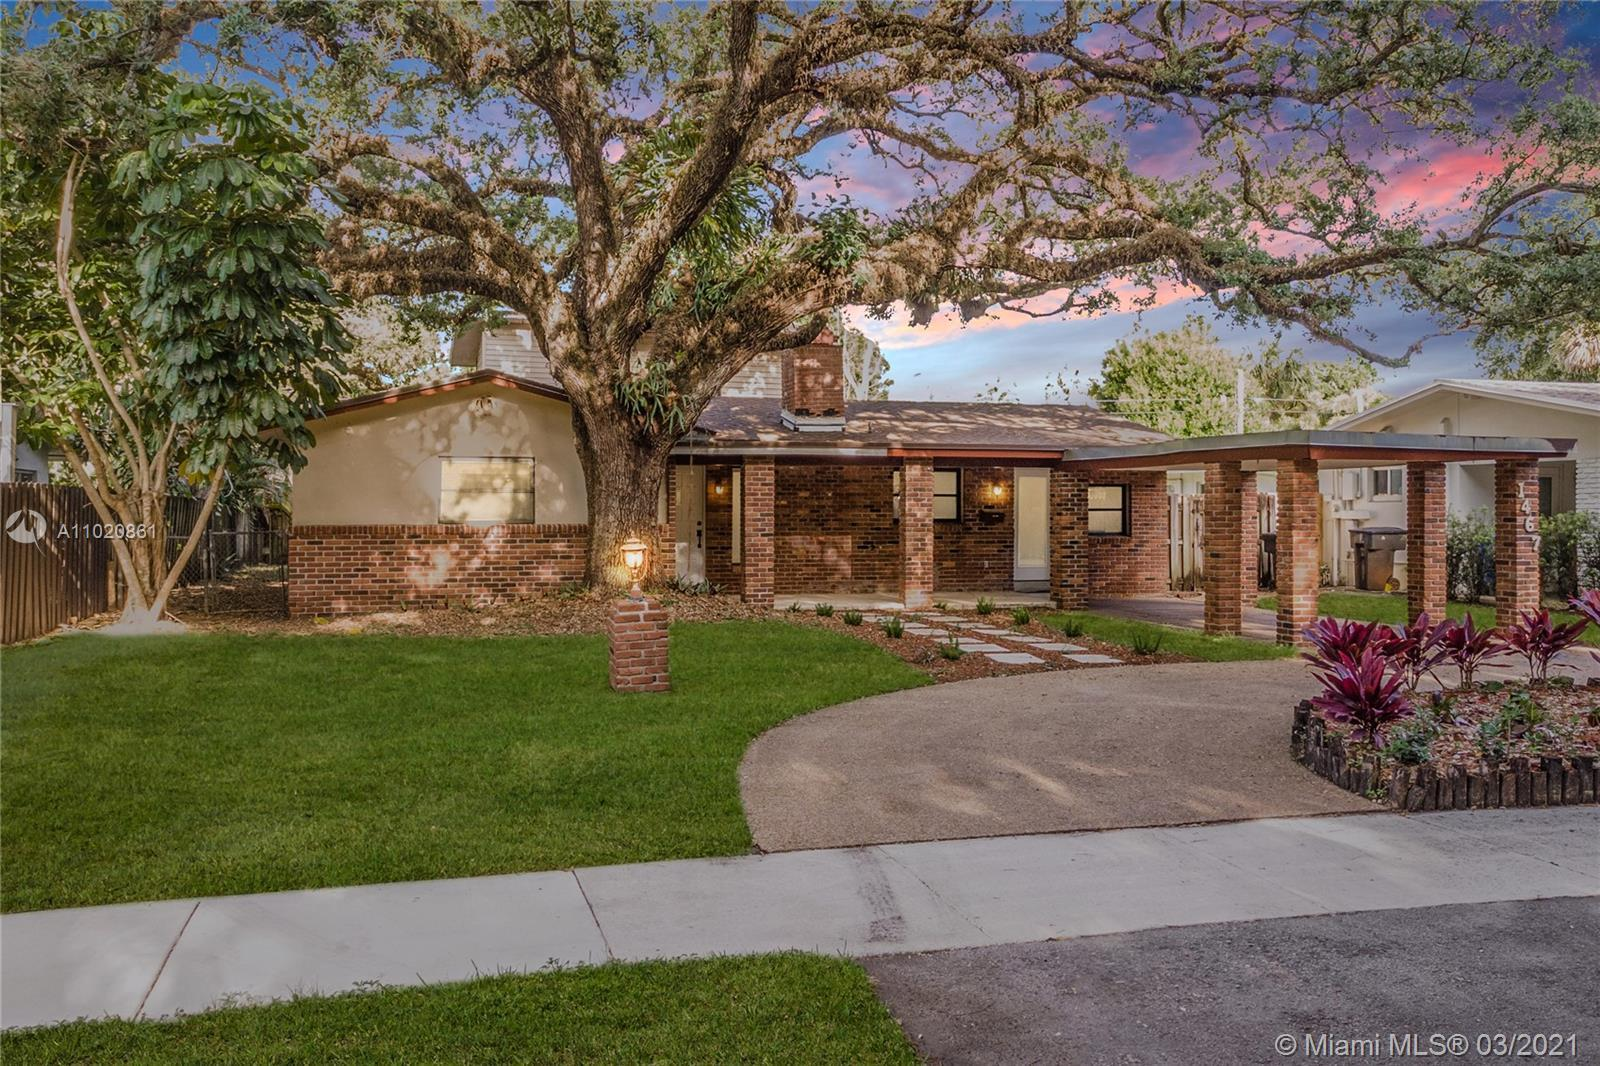 This two story single family home is found on a quiet , tree lined street in Shady Banks, one of For